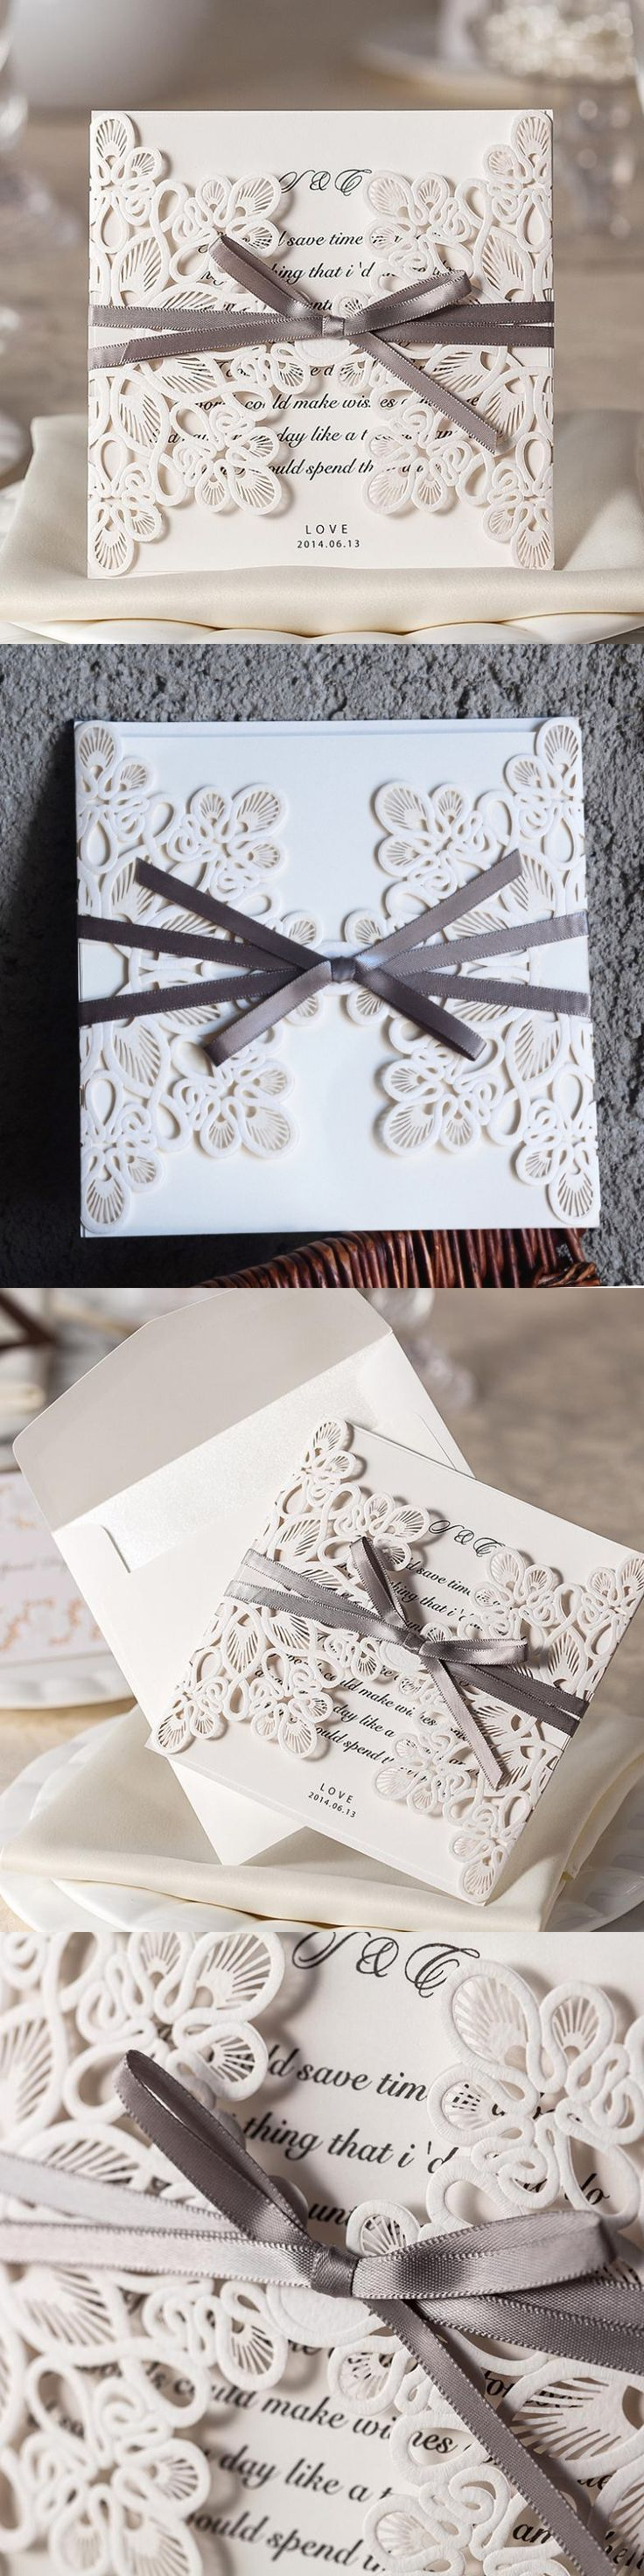 paper cut wedding invitations uk%0A White Floral Laser Cut Wedding Invitation   Pcs Sample Customized Table Card  Seat Card Place Card New Design Wedding Favor